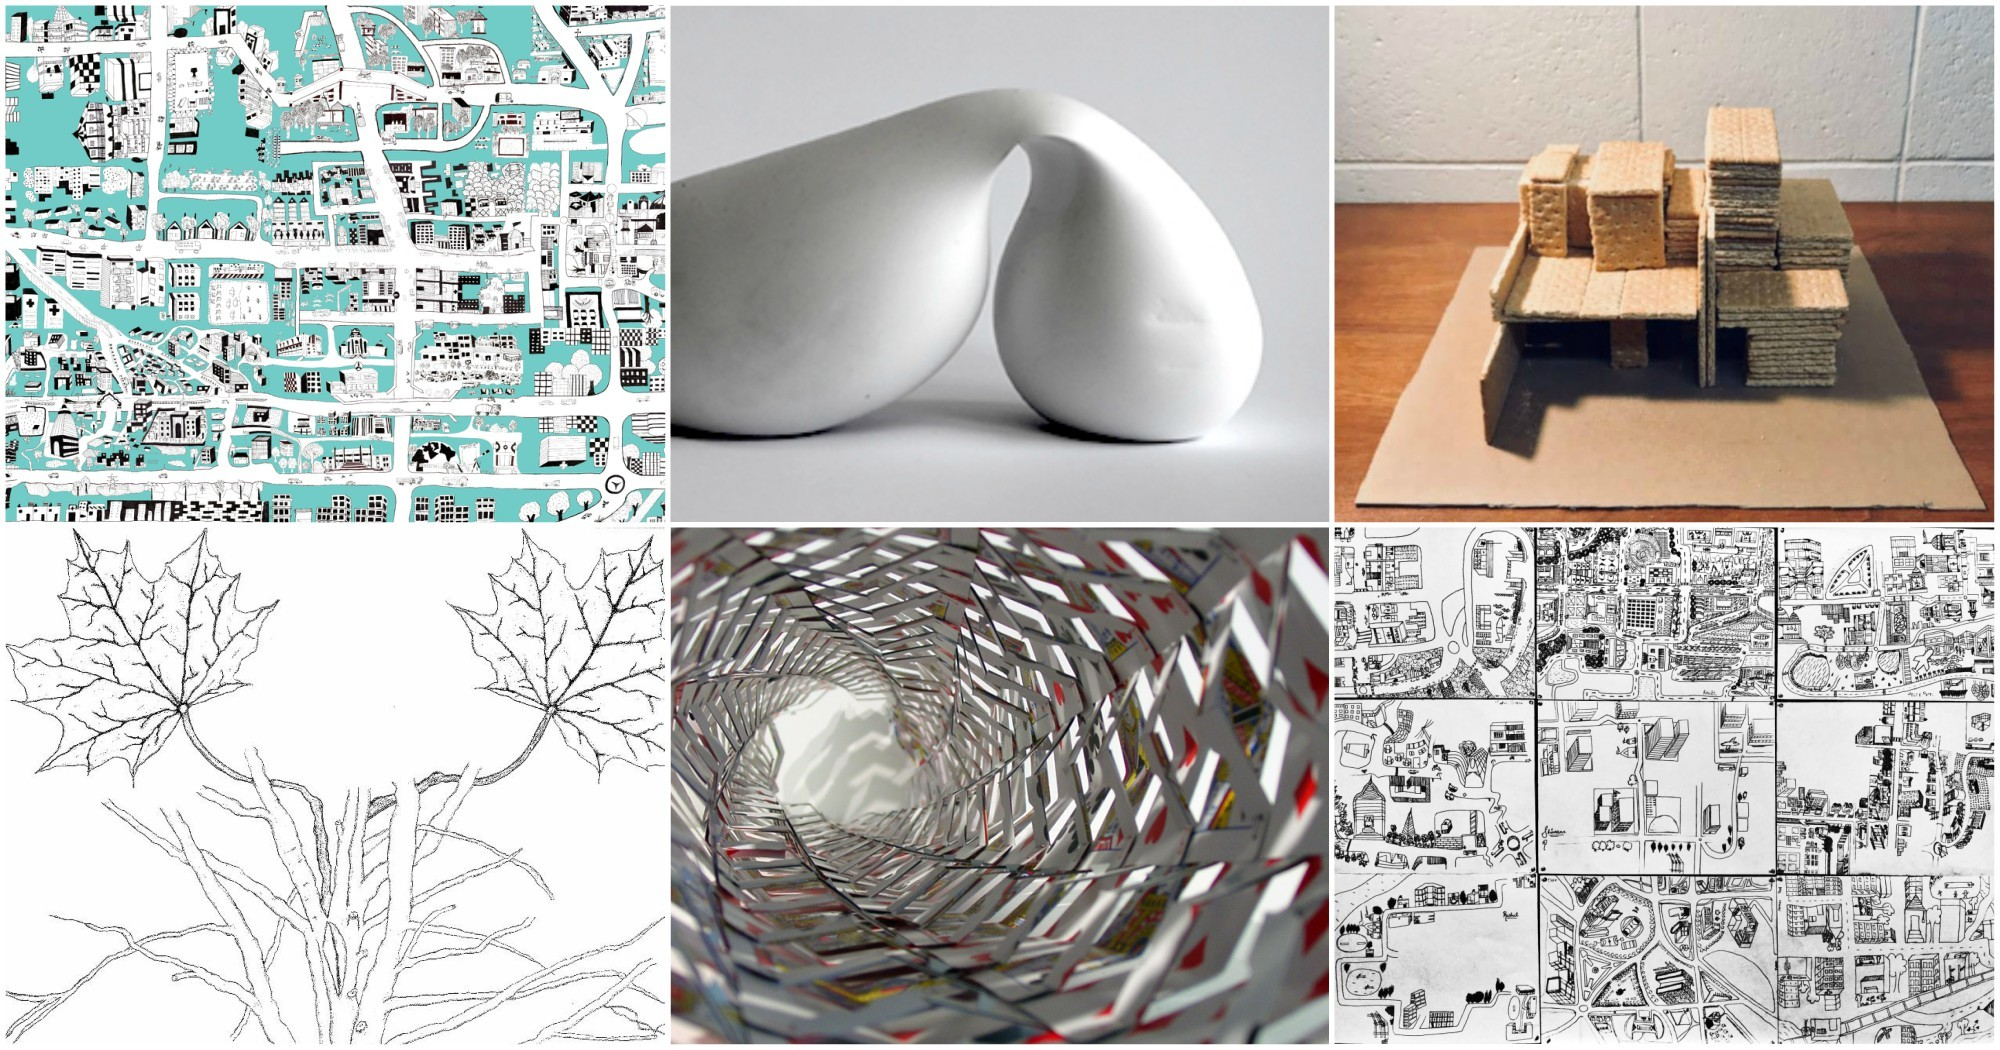 A Glimpse Into The Weird World Of Architecture Studentsu0027 First Assignments,  Via Aric Gitomer